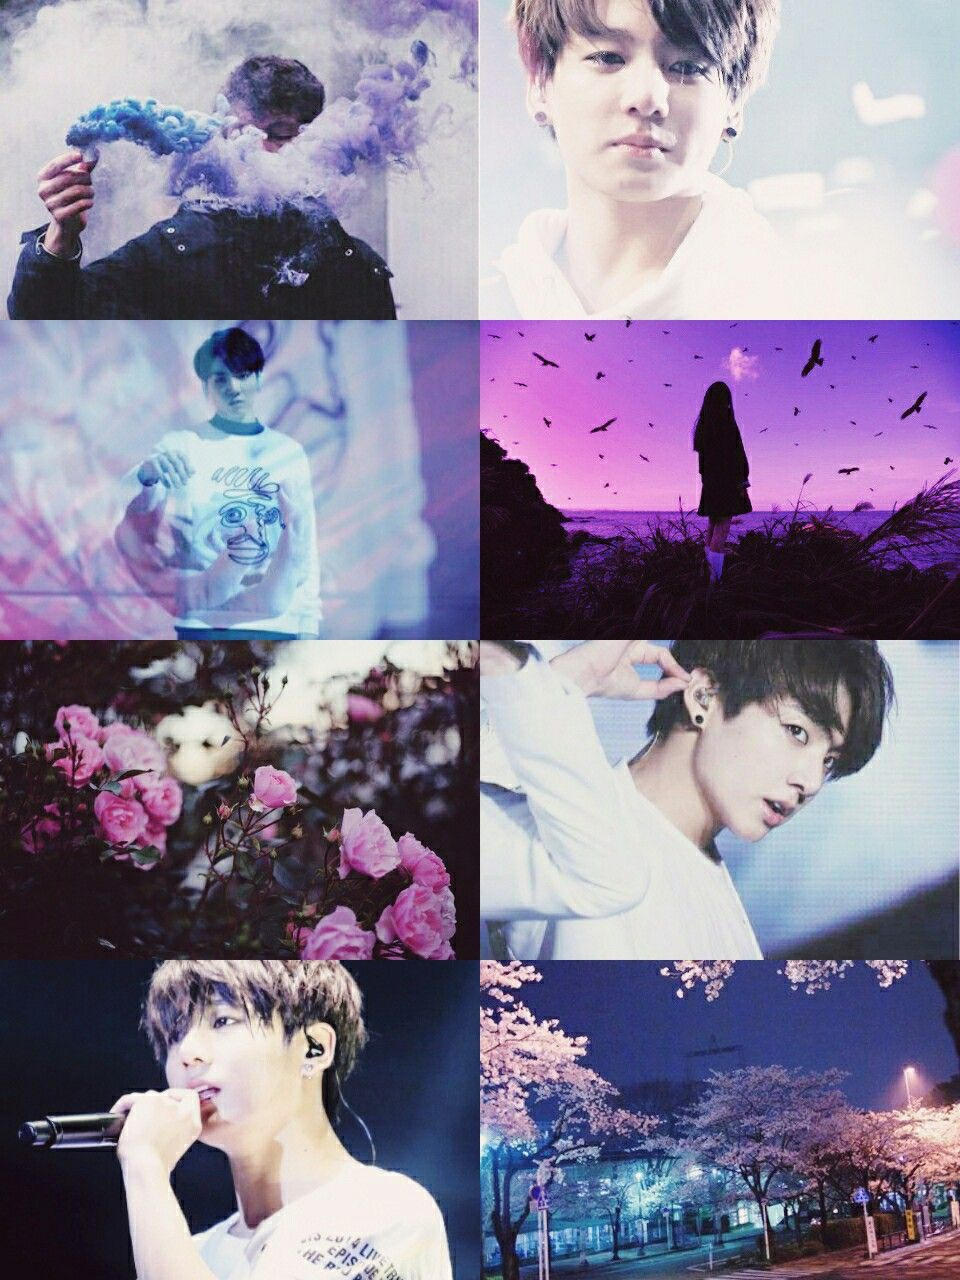 Bts Aesthetic Jungkookie Pinterest Bts Bts Jungkook And Bts